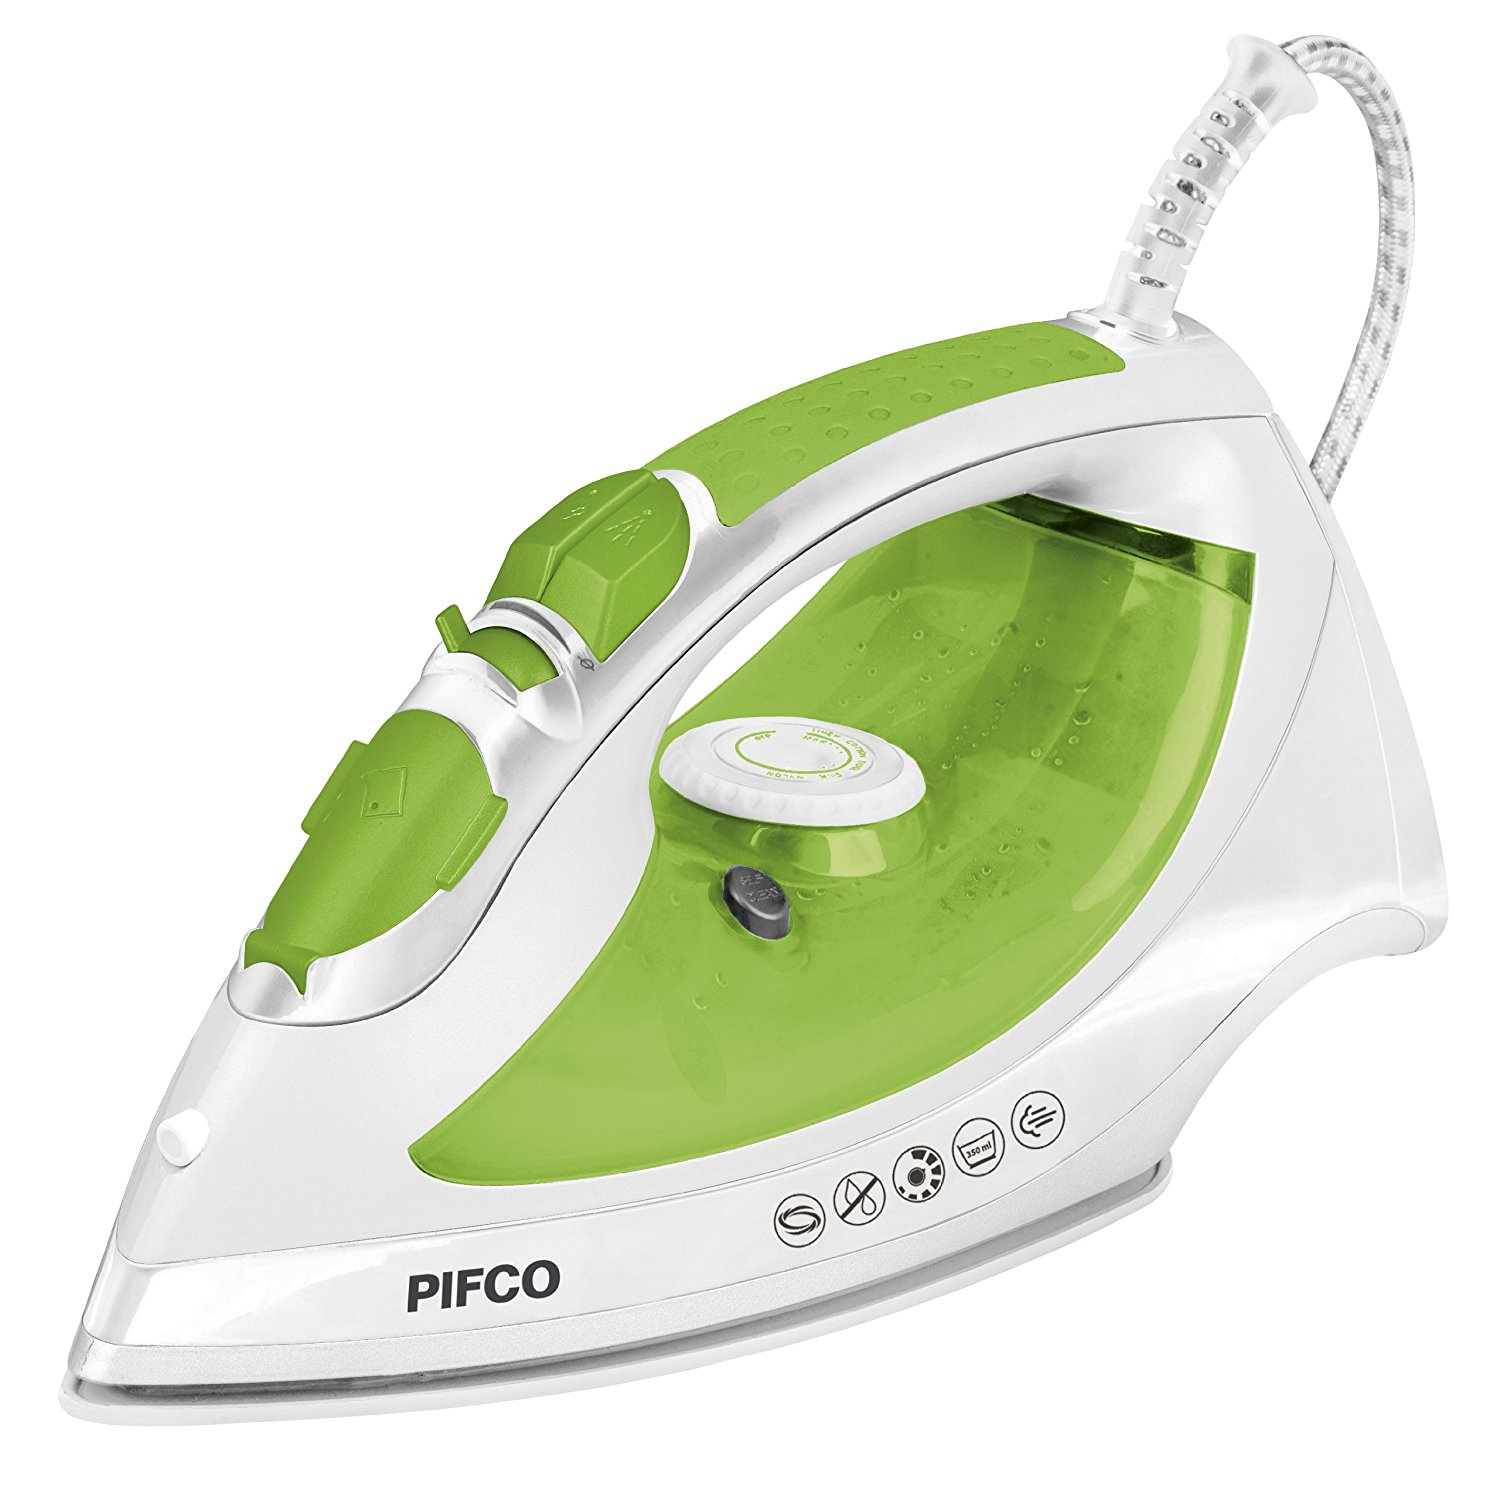 Pifco P22002 2800w MAX Steam Iron